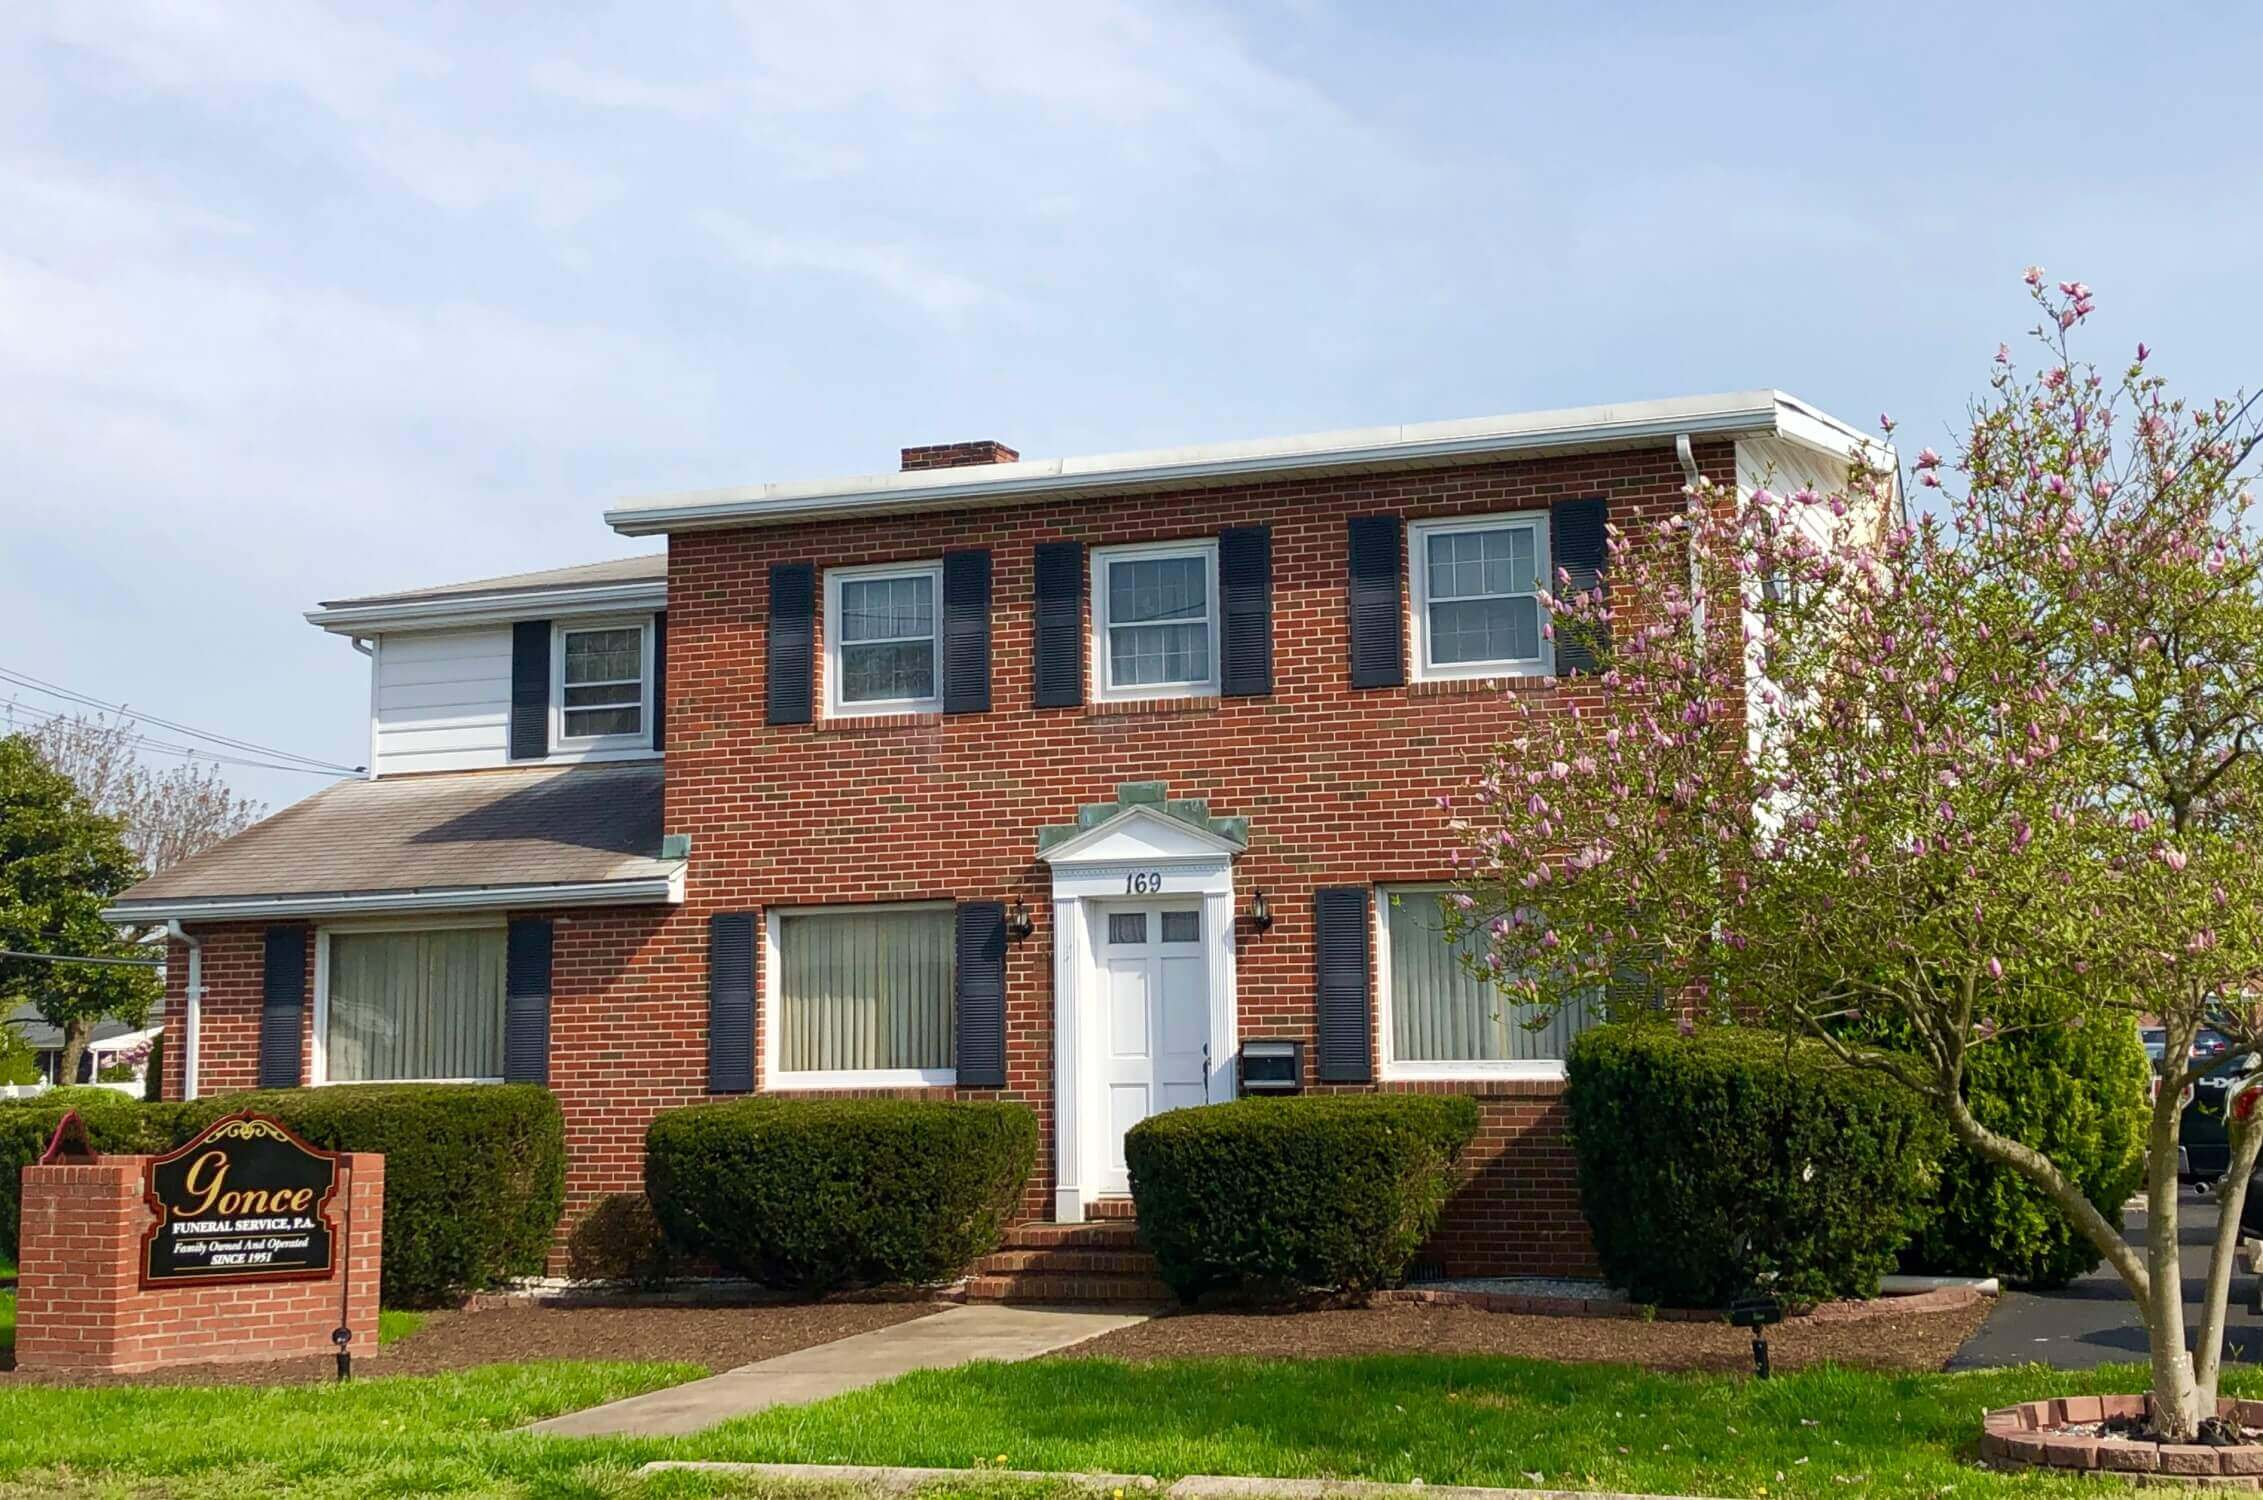 Section 8 Houses Only In Kannapolis,Nc